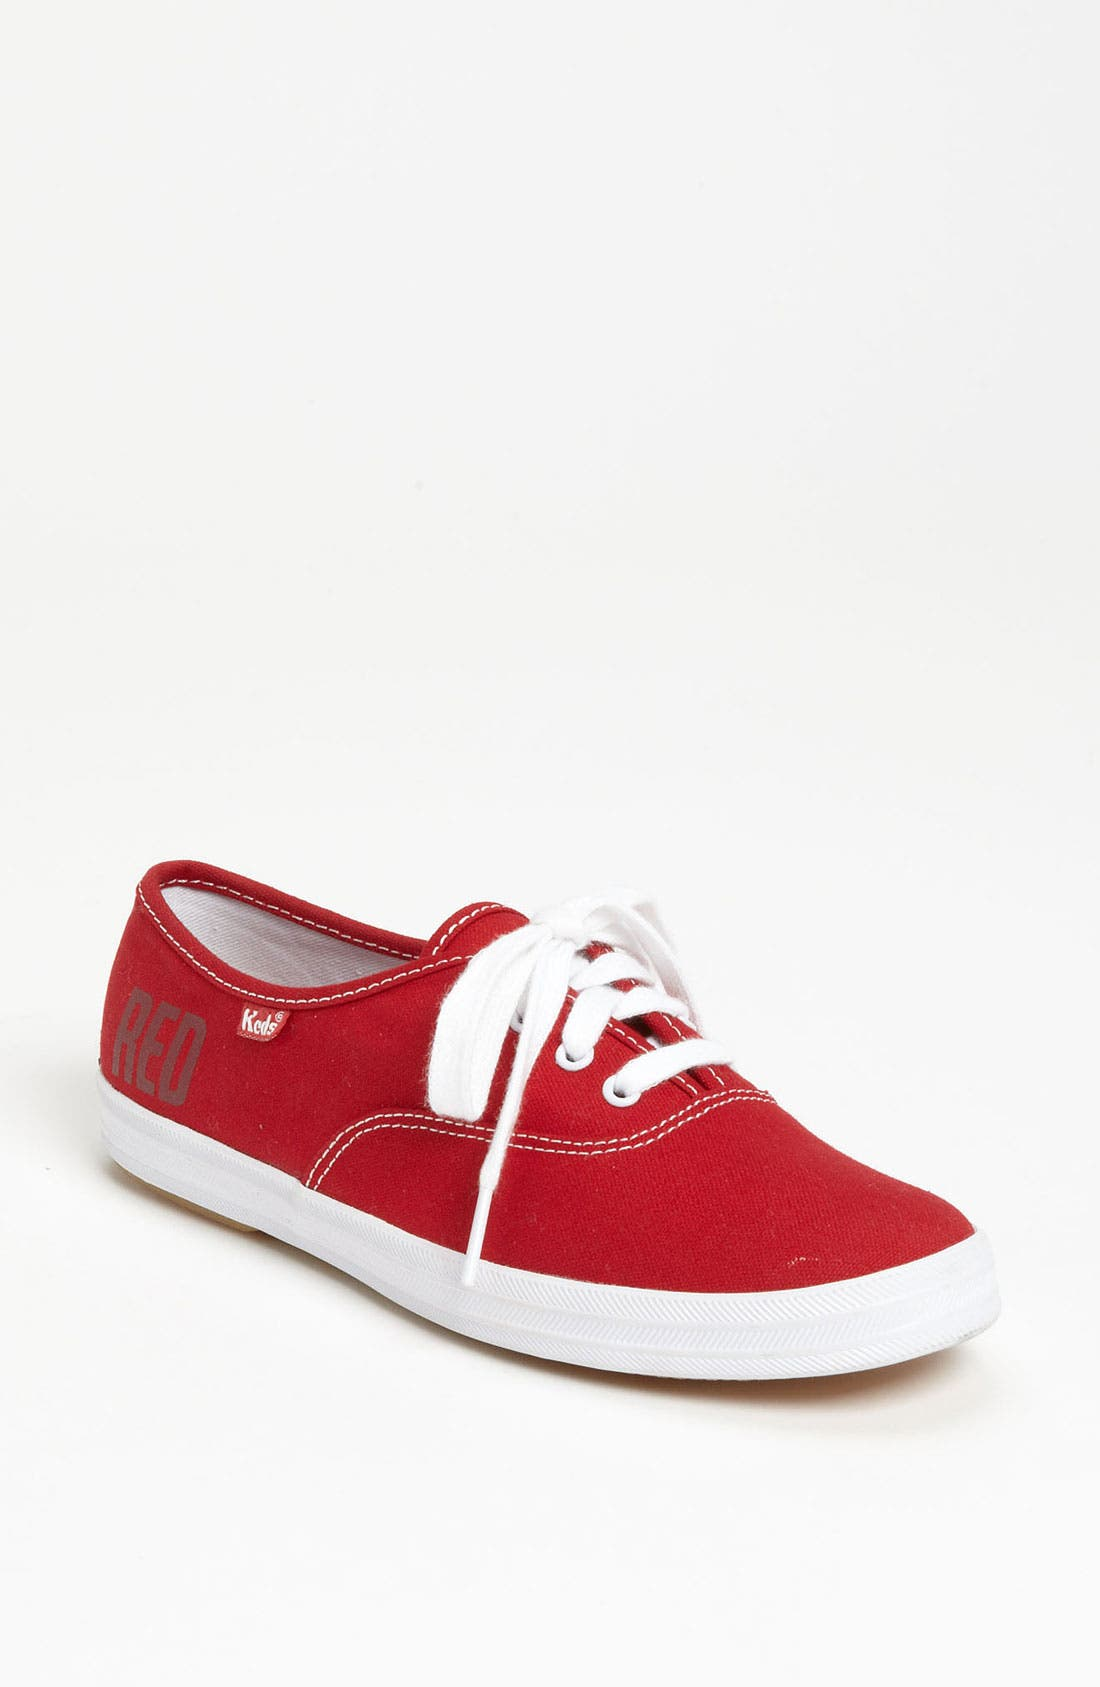 Main Image - Keds® Taylor Swift 'RED' Champion Sneaker (Limited Edition)